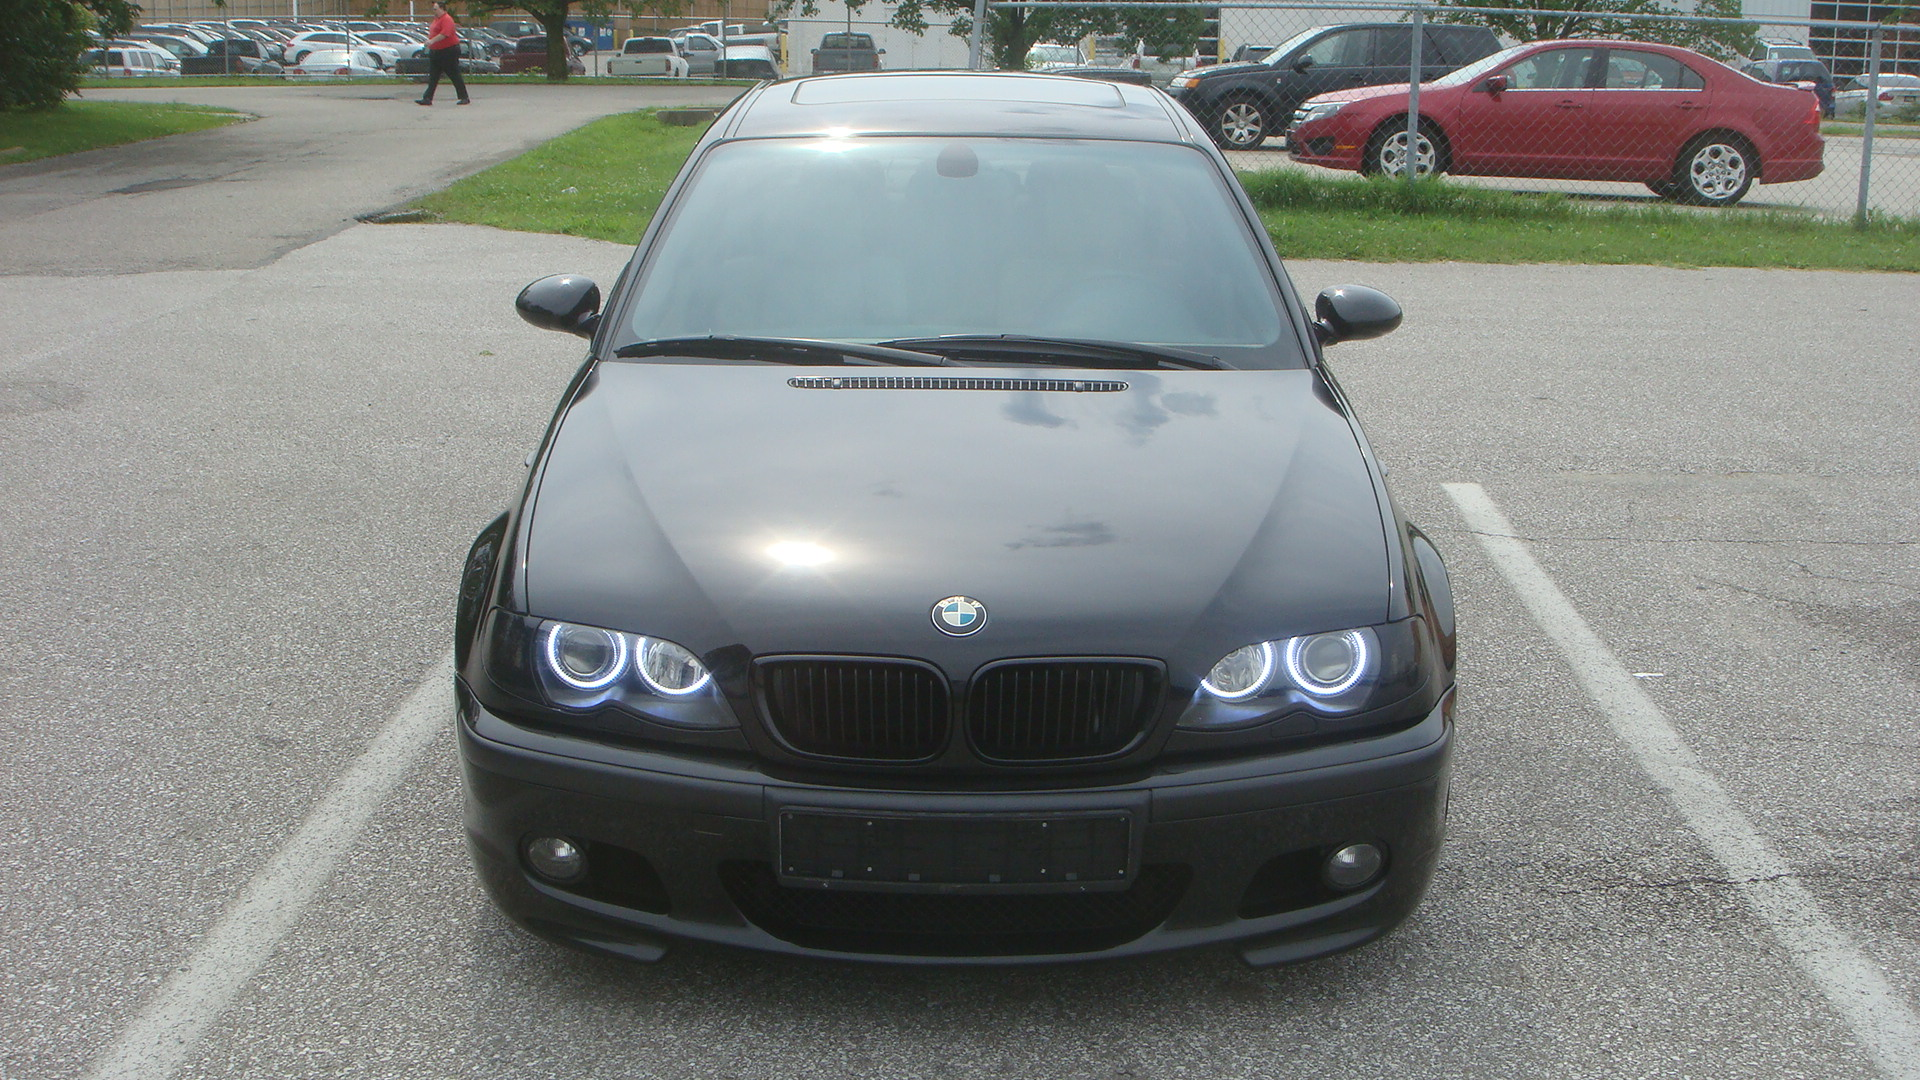 For Sale (SOLD): 2004 BMW 330i ZHP Performance Package 6MT Manual